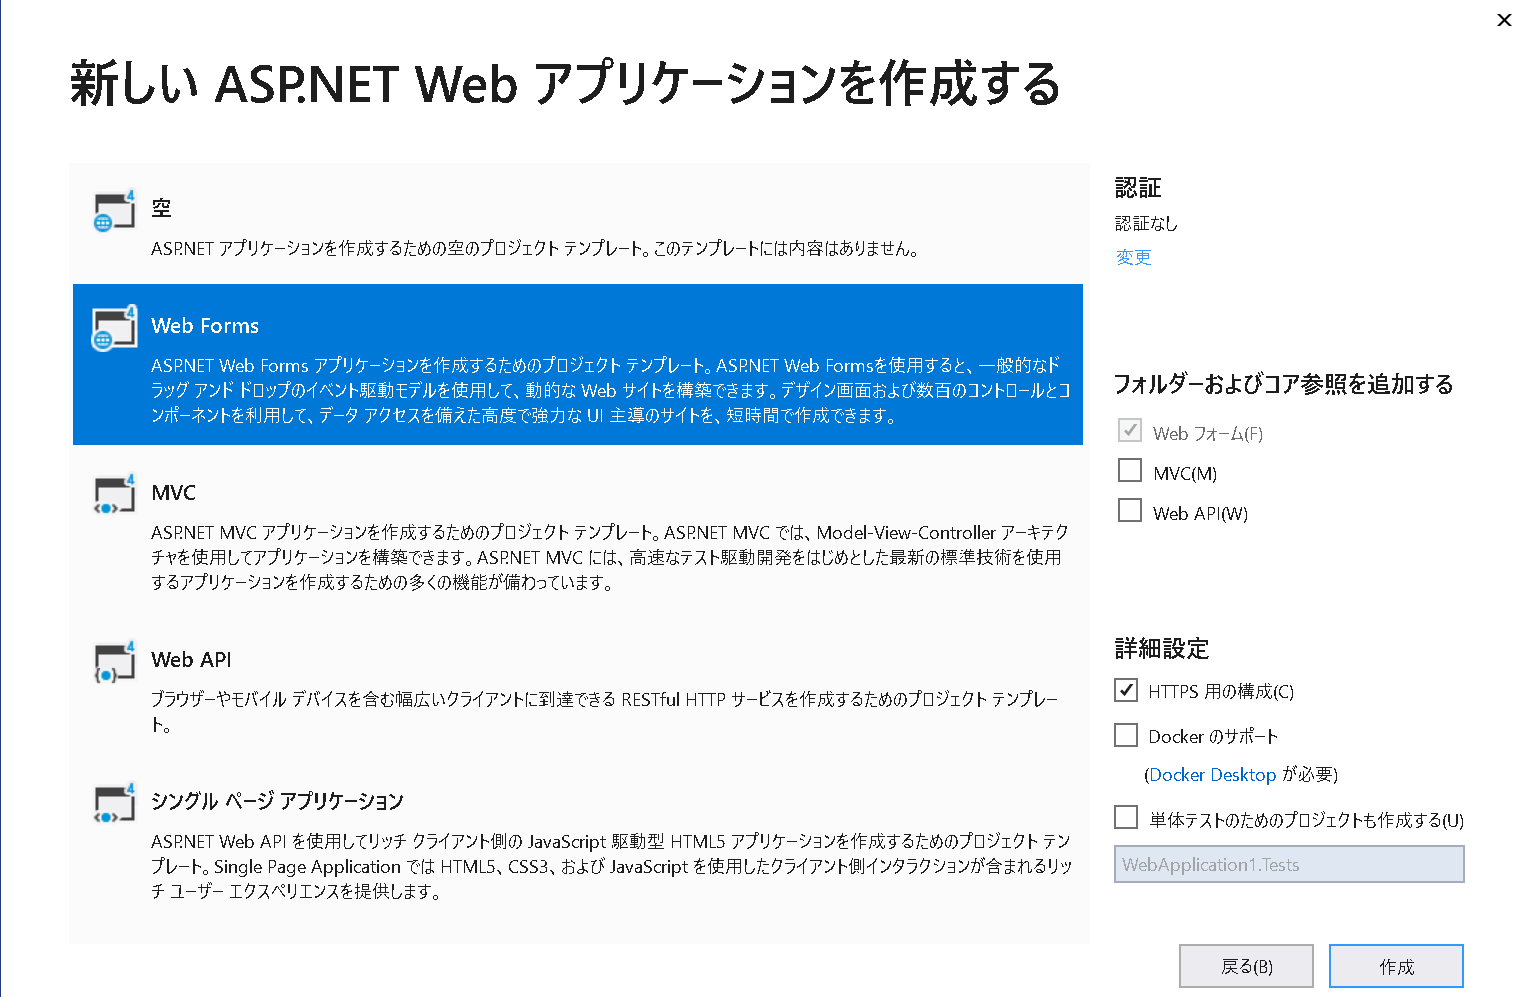 Web Forms